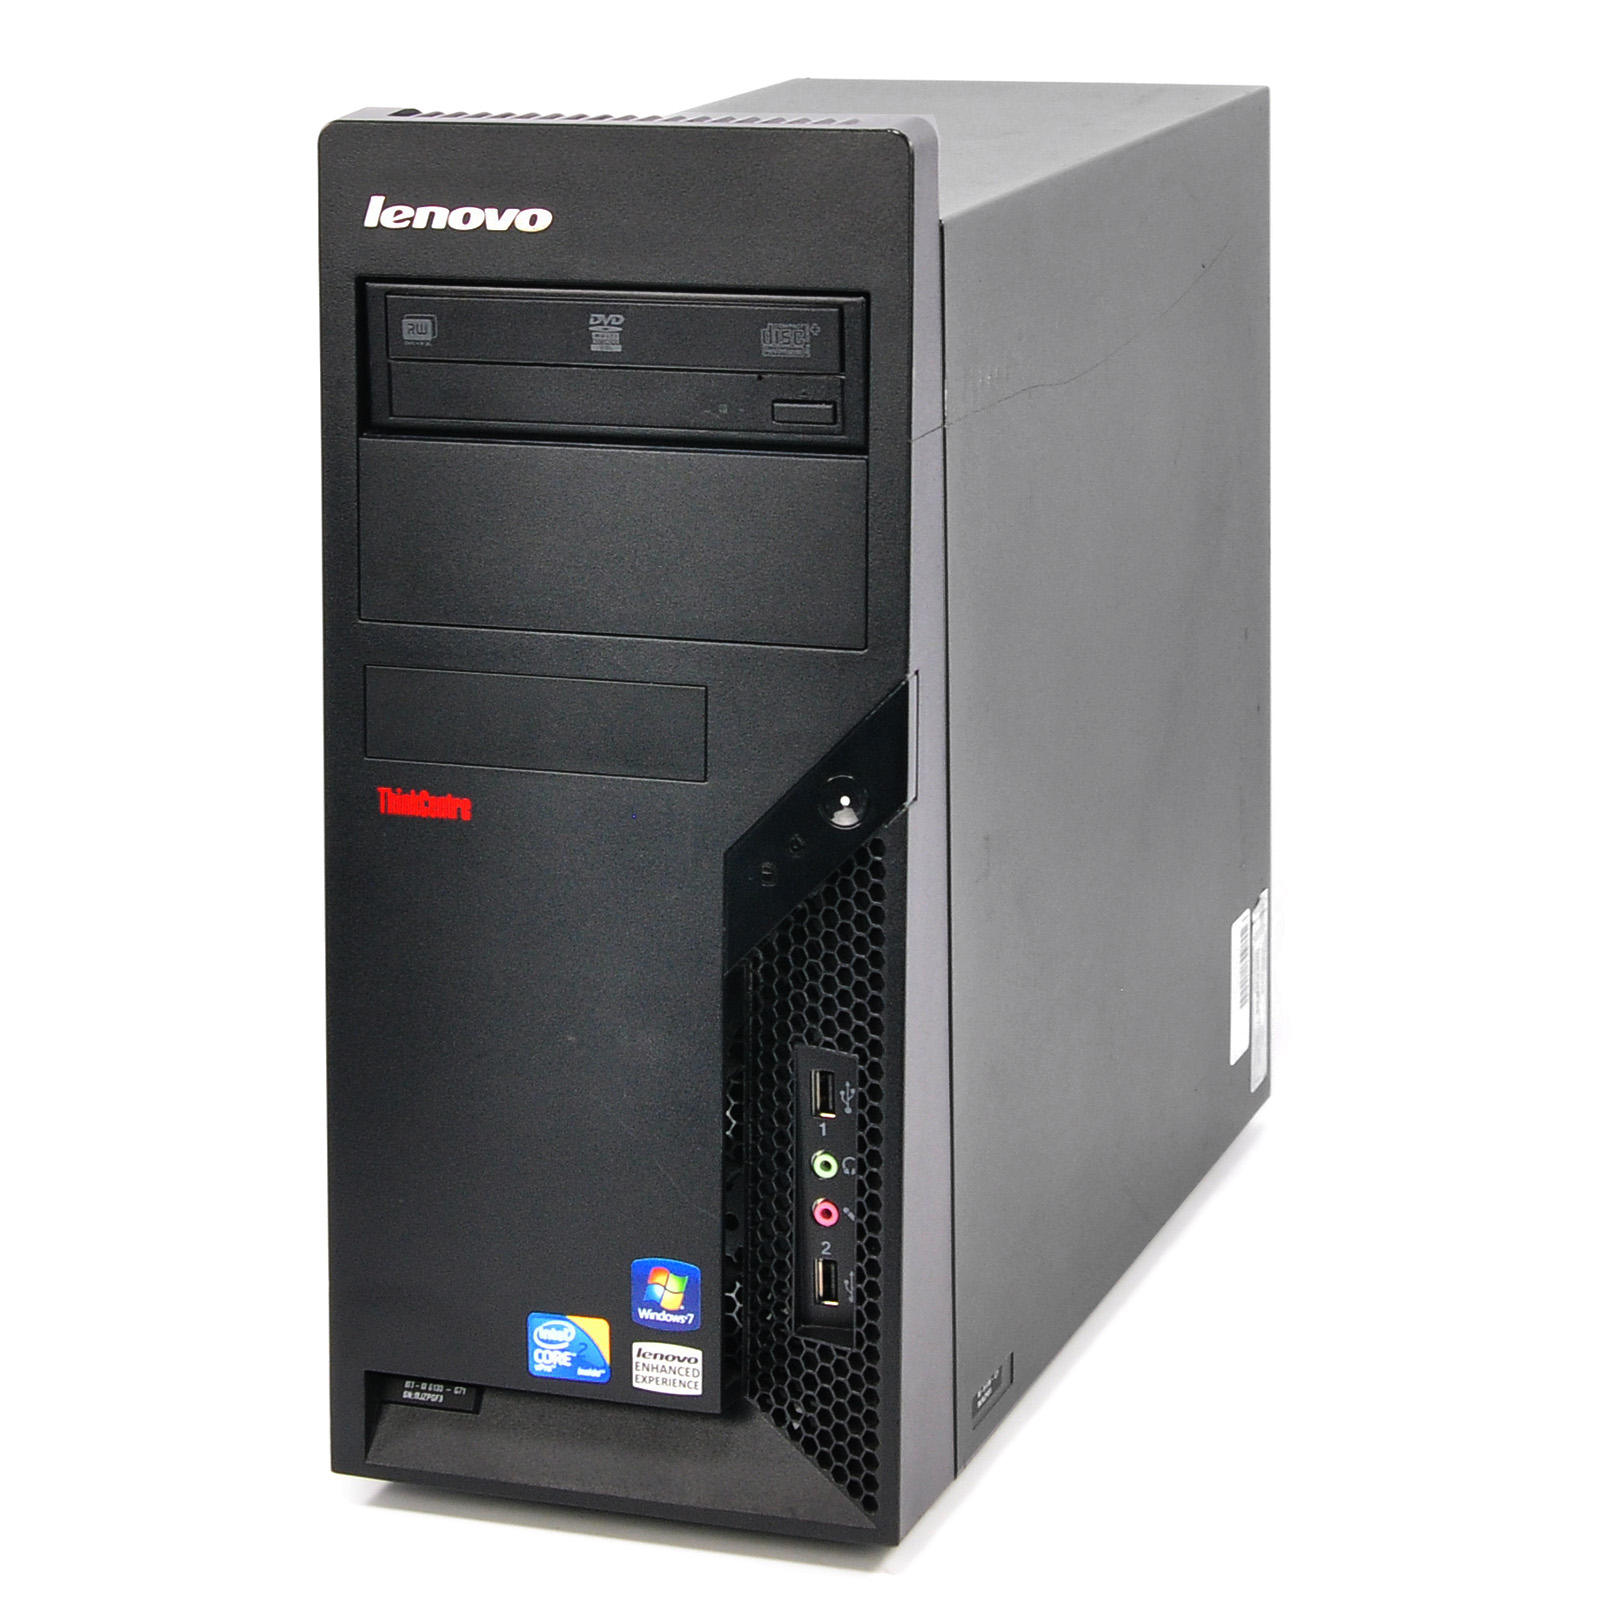 How To Restore Windows 7 To Factory Settings Lenovo